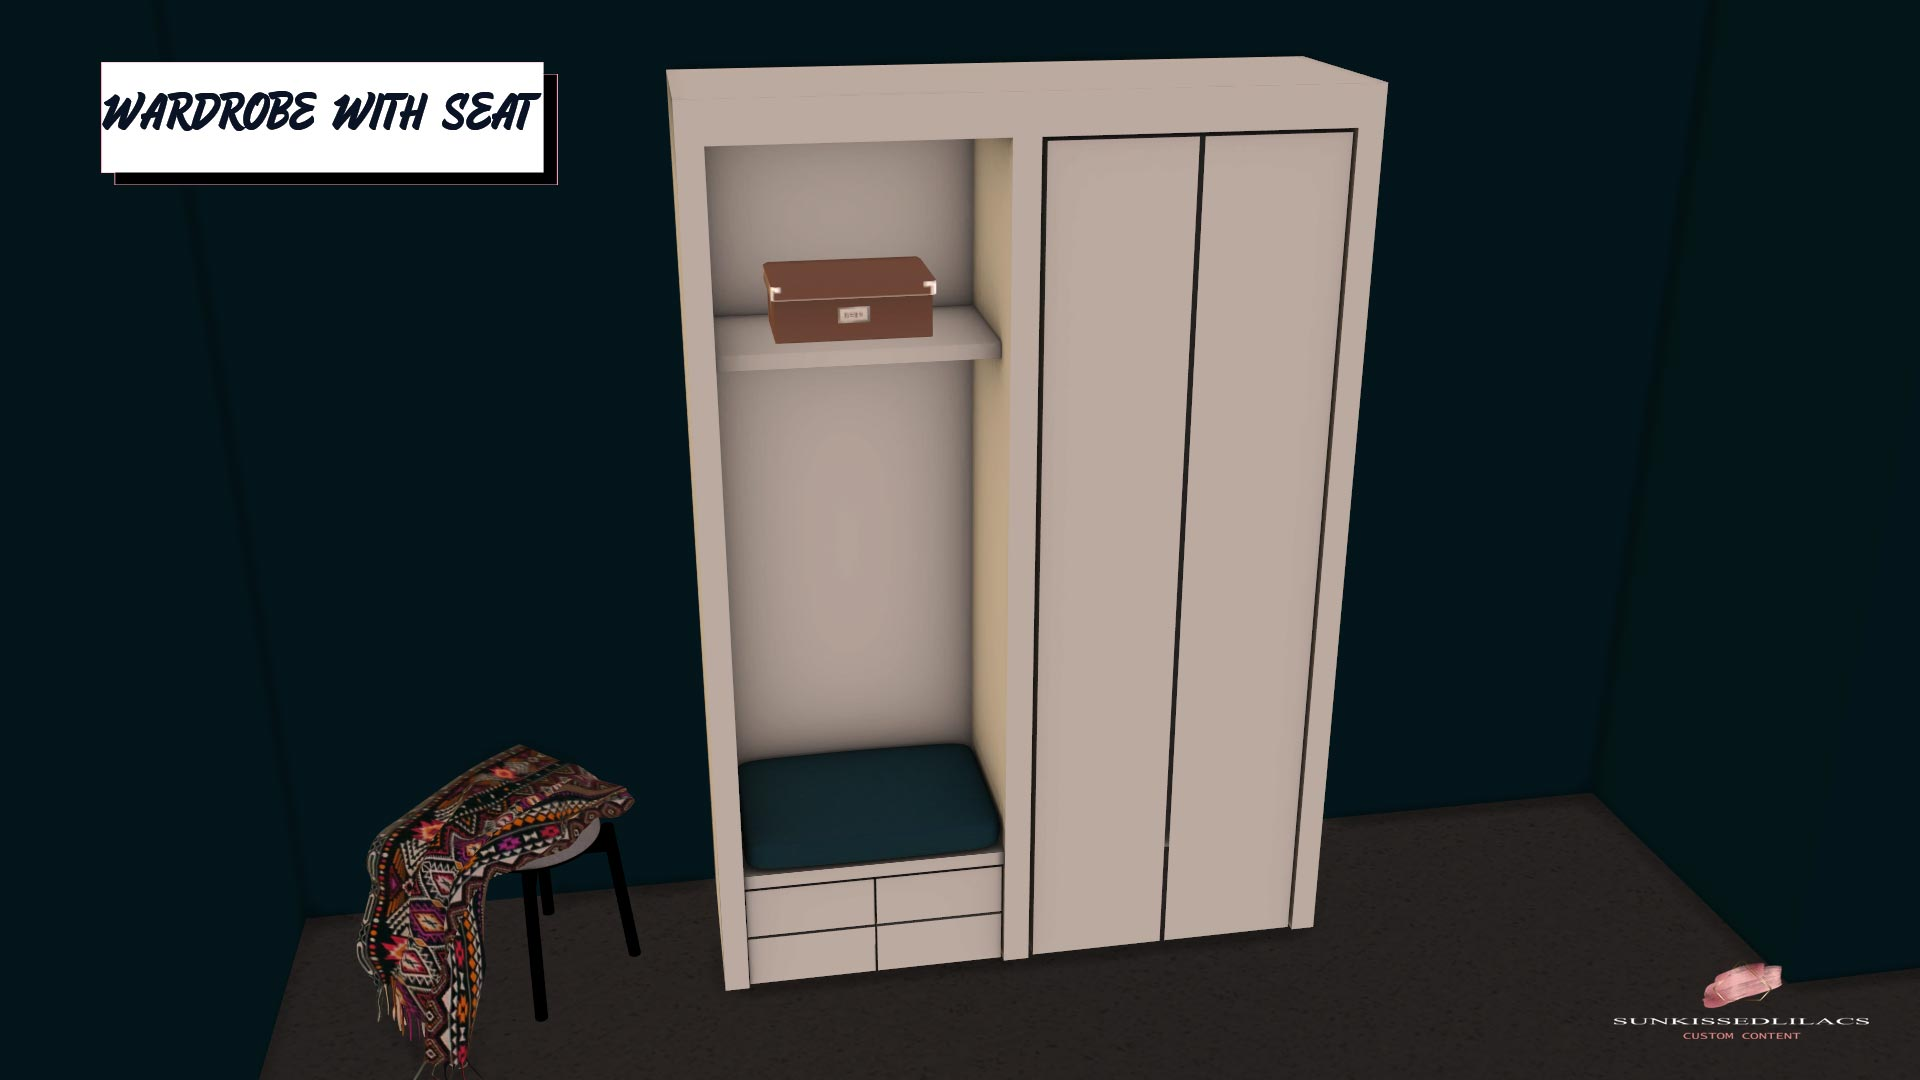 Wardrobe With Seat, high quality sims 4 cc, sunkissedlilacs, free sims 4 furniture, sims 4 custom content,